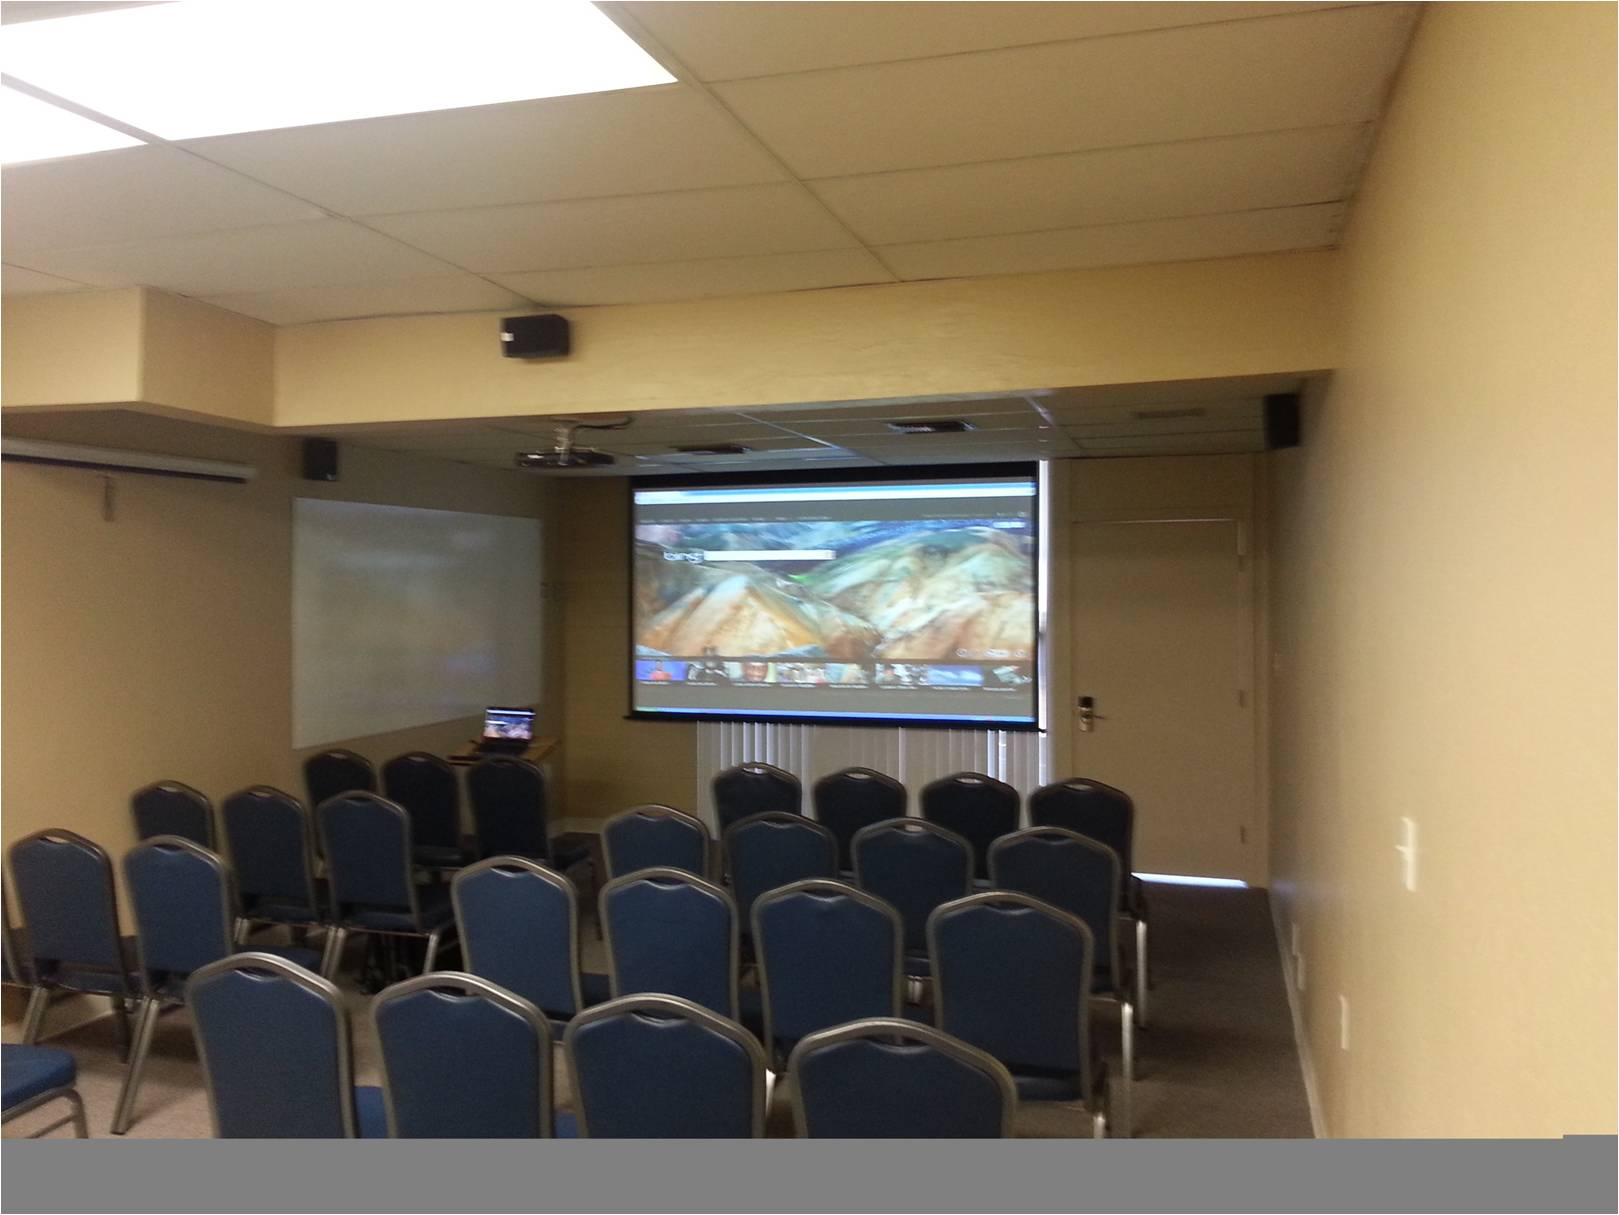 Fremont - San Jose meeting conference classroom hourly facility rental